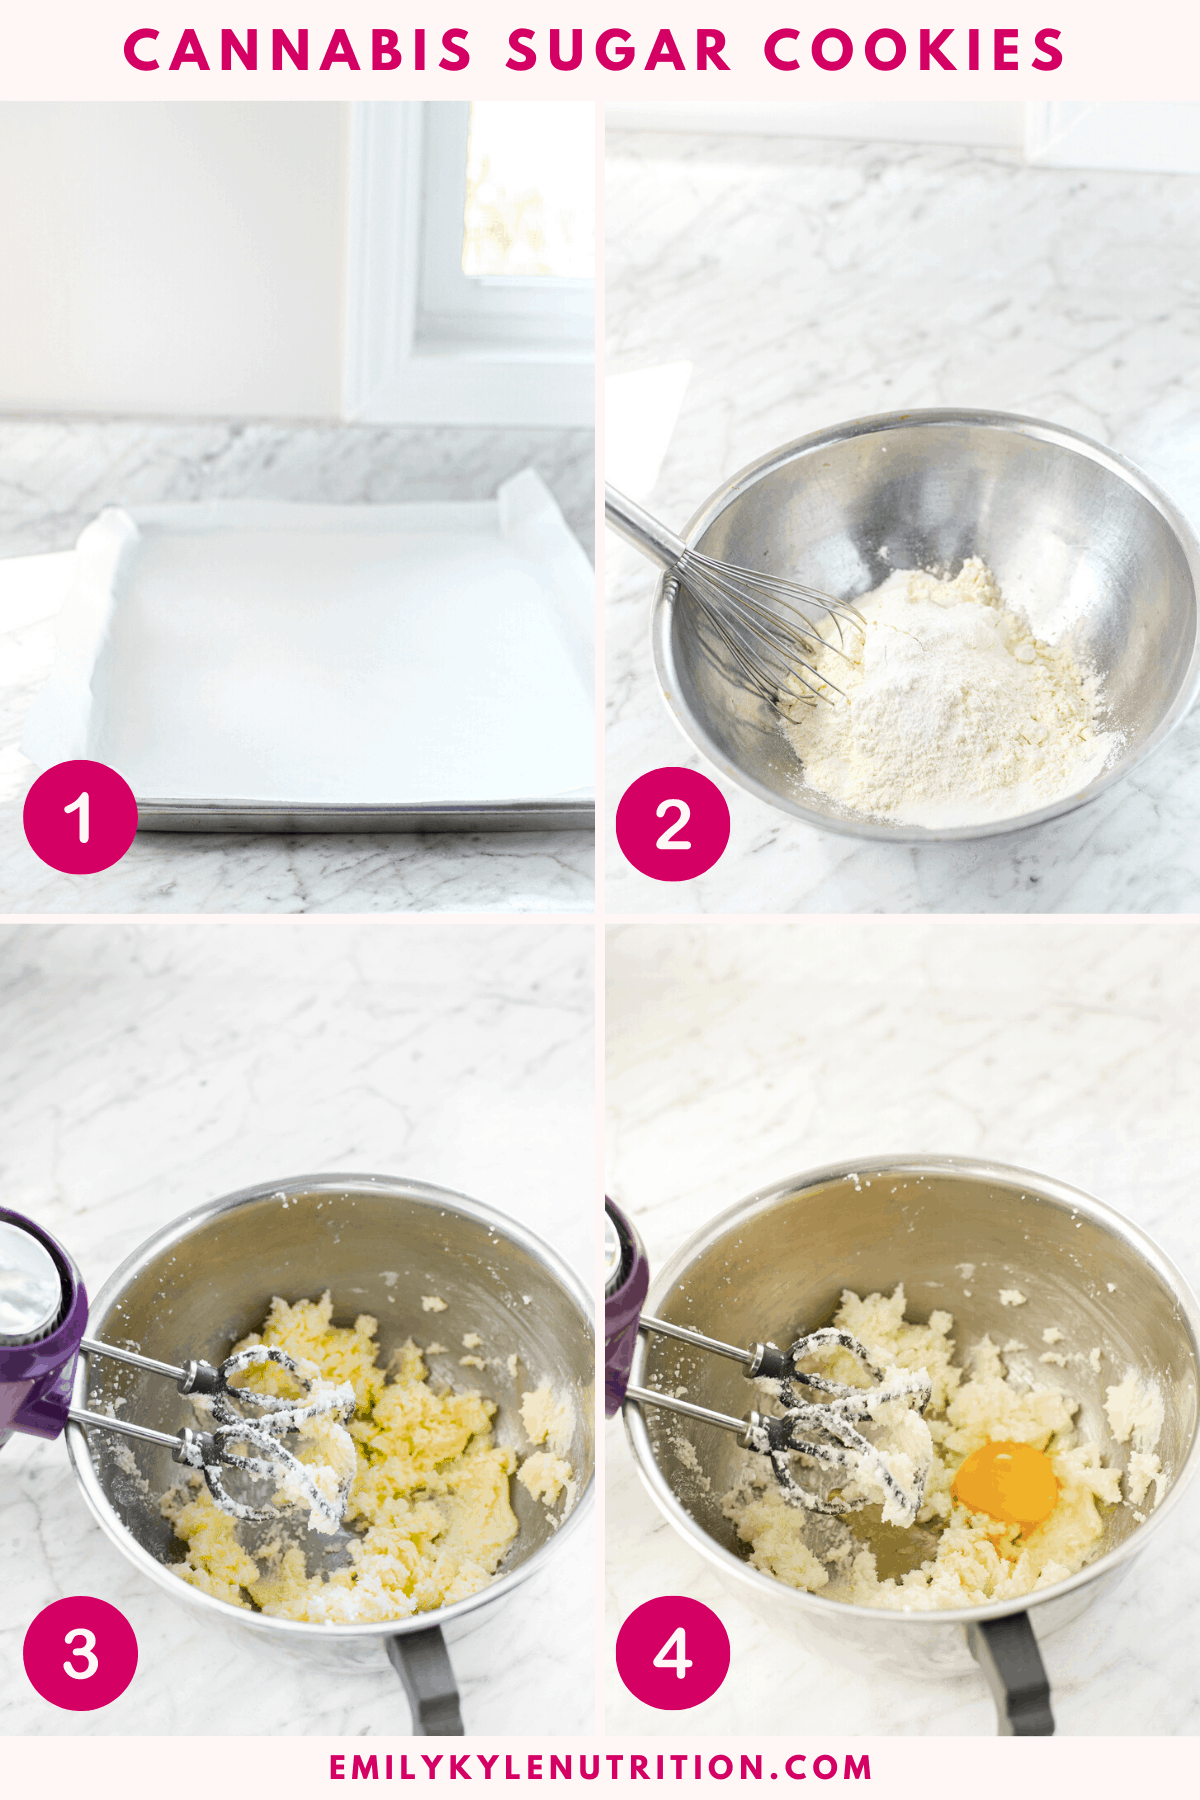 A four step collage showing the first four steps to making cannabis sugar cookies including a lined baking tray, the dry ingredients in a bowl, creaming together the butter and sugar, and adding an egg